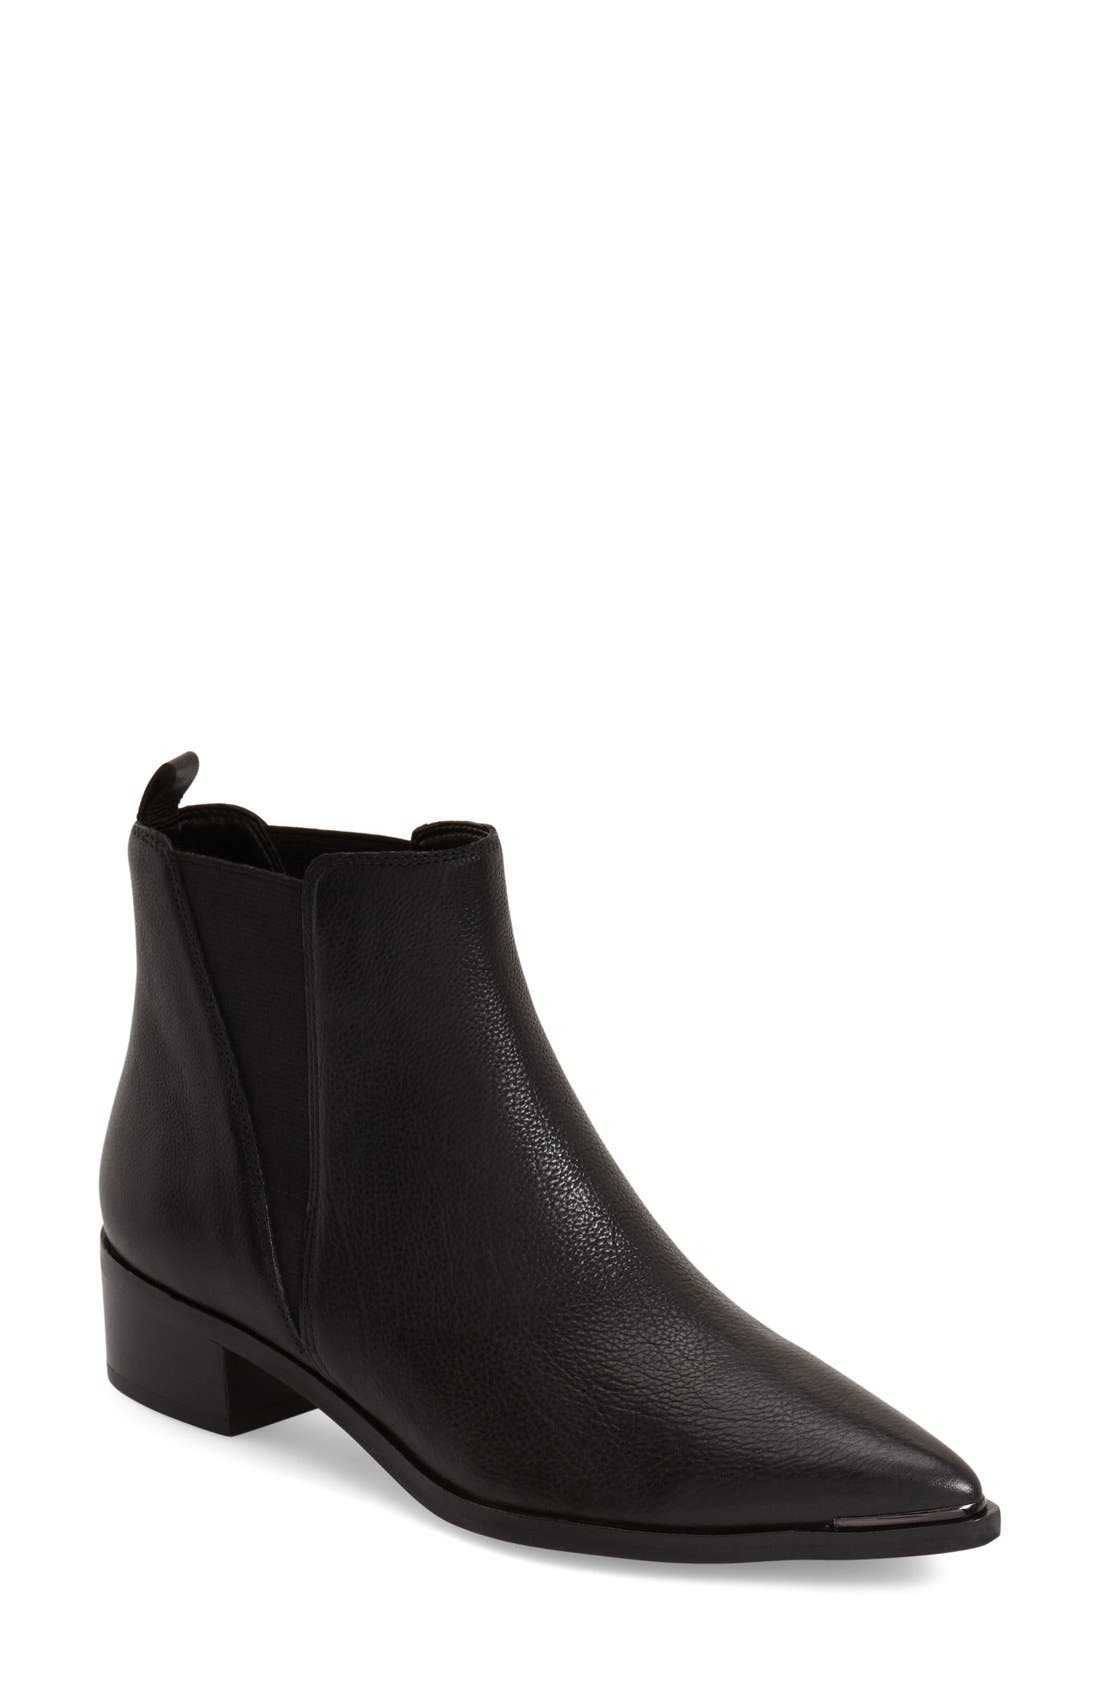 'Yale' Chelsea Boot,                             Main thumbnail 1, color,                             Black Leather